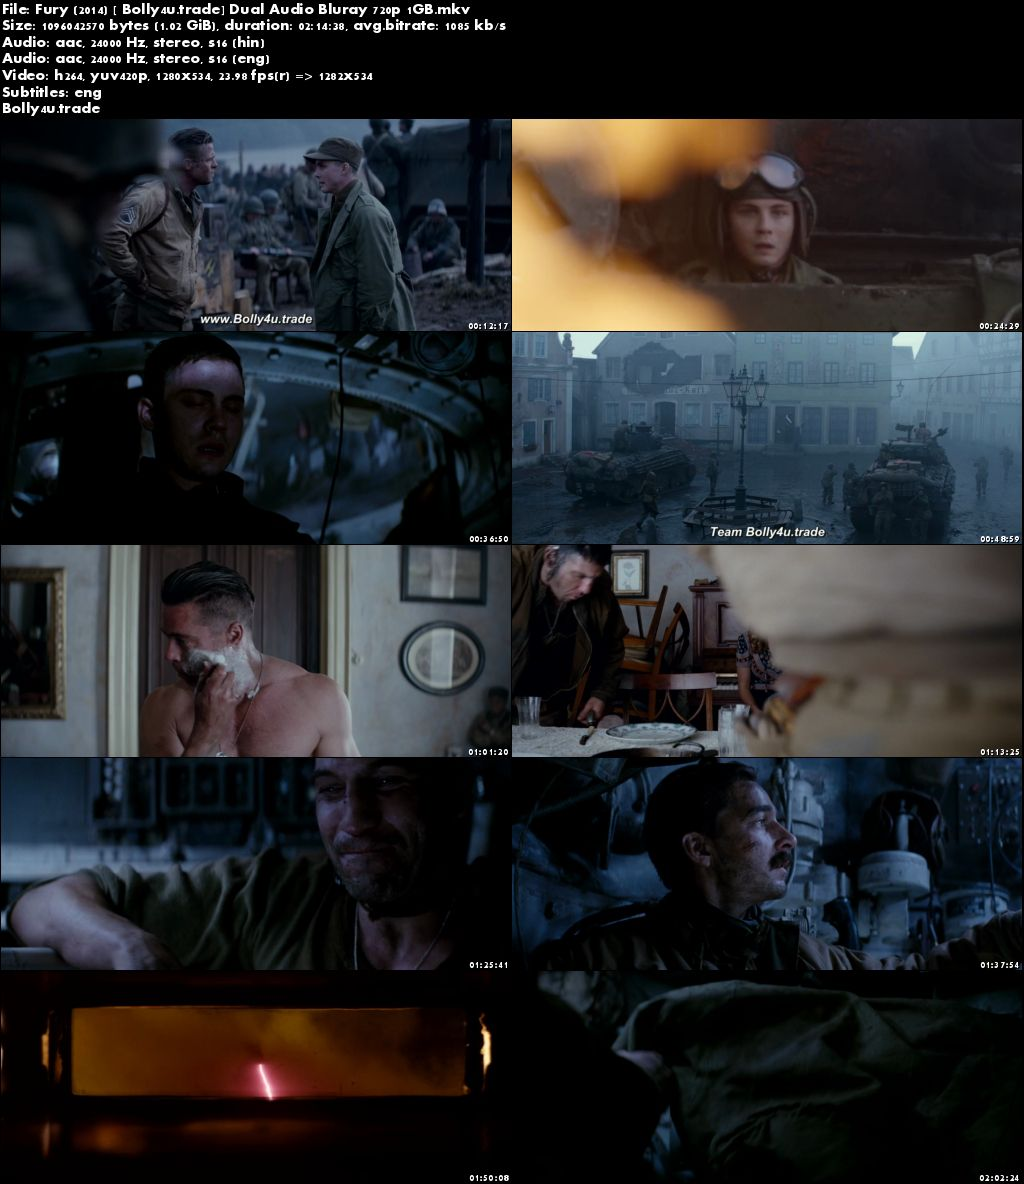 Fury 2014 BluRay 450MB Hindi Dubbed Dual Audio ORG 480p Download